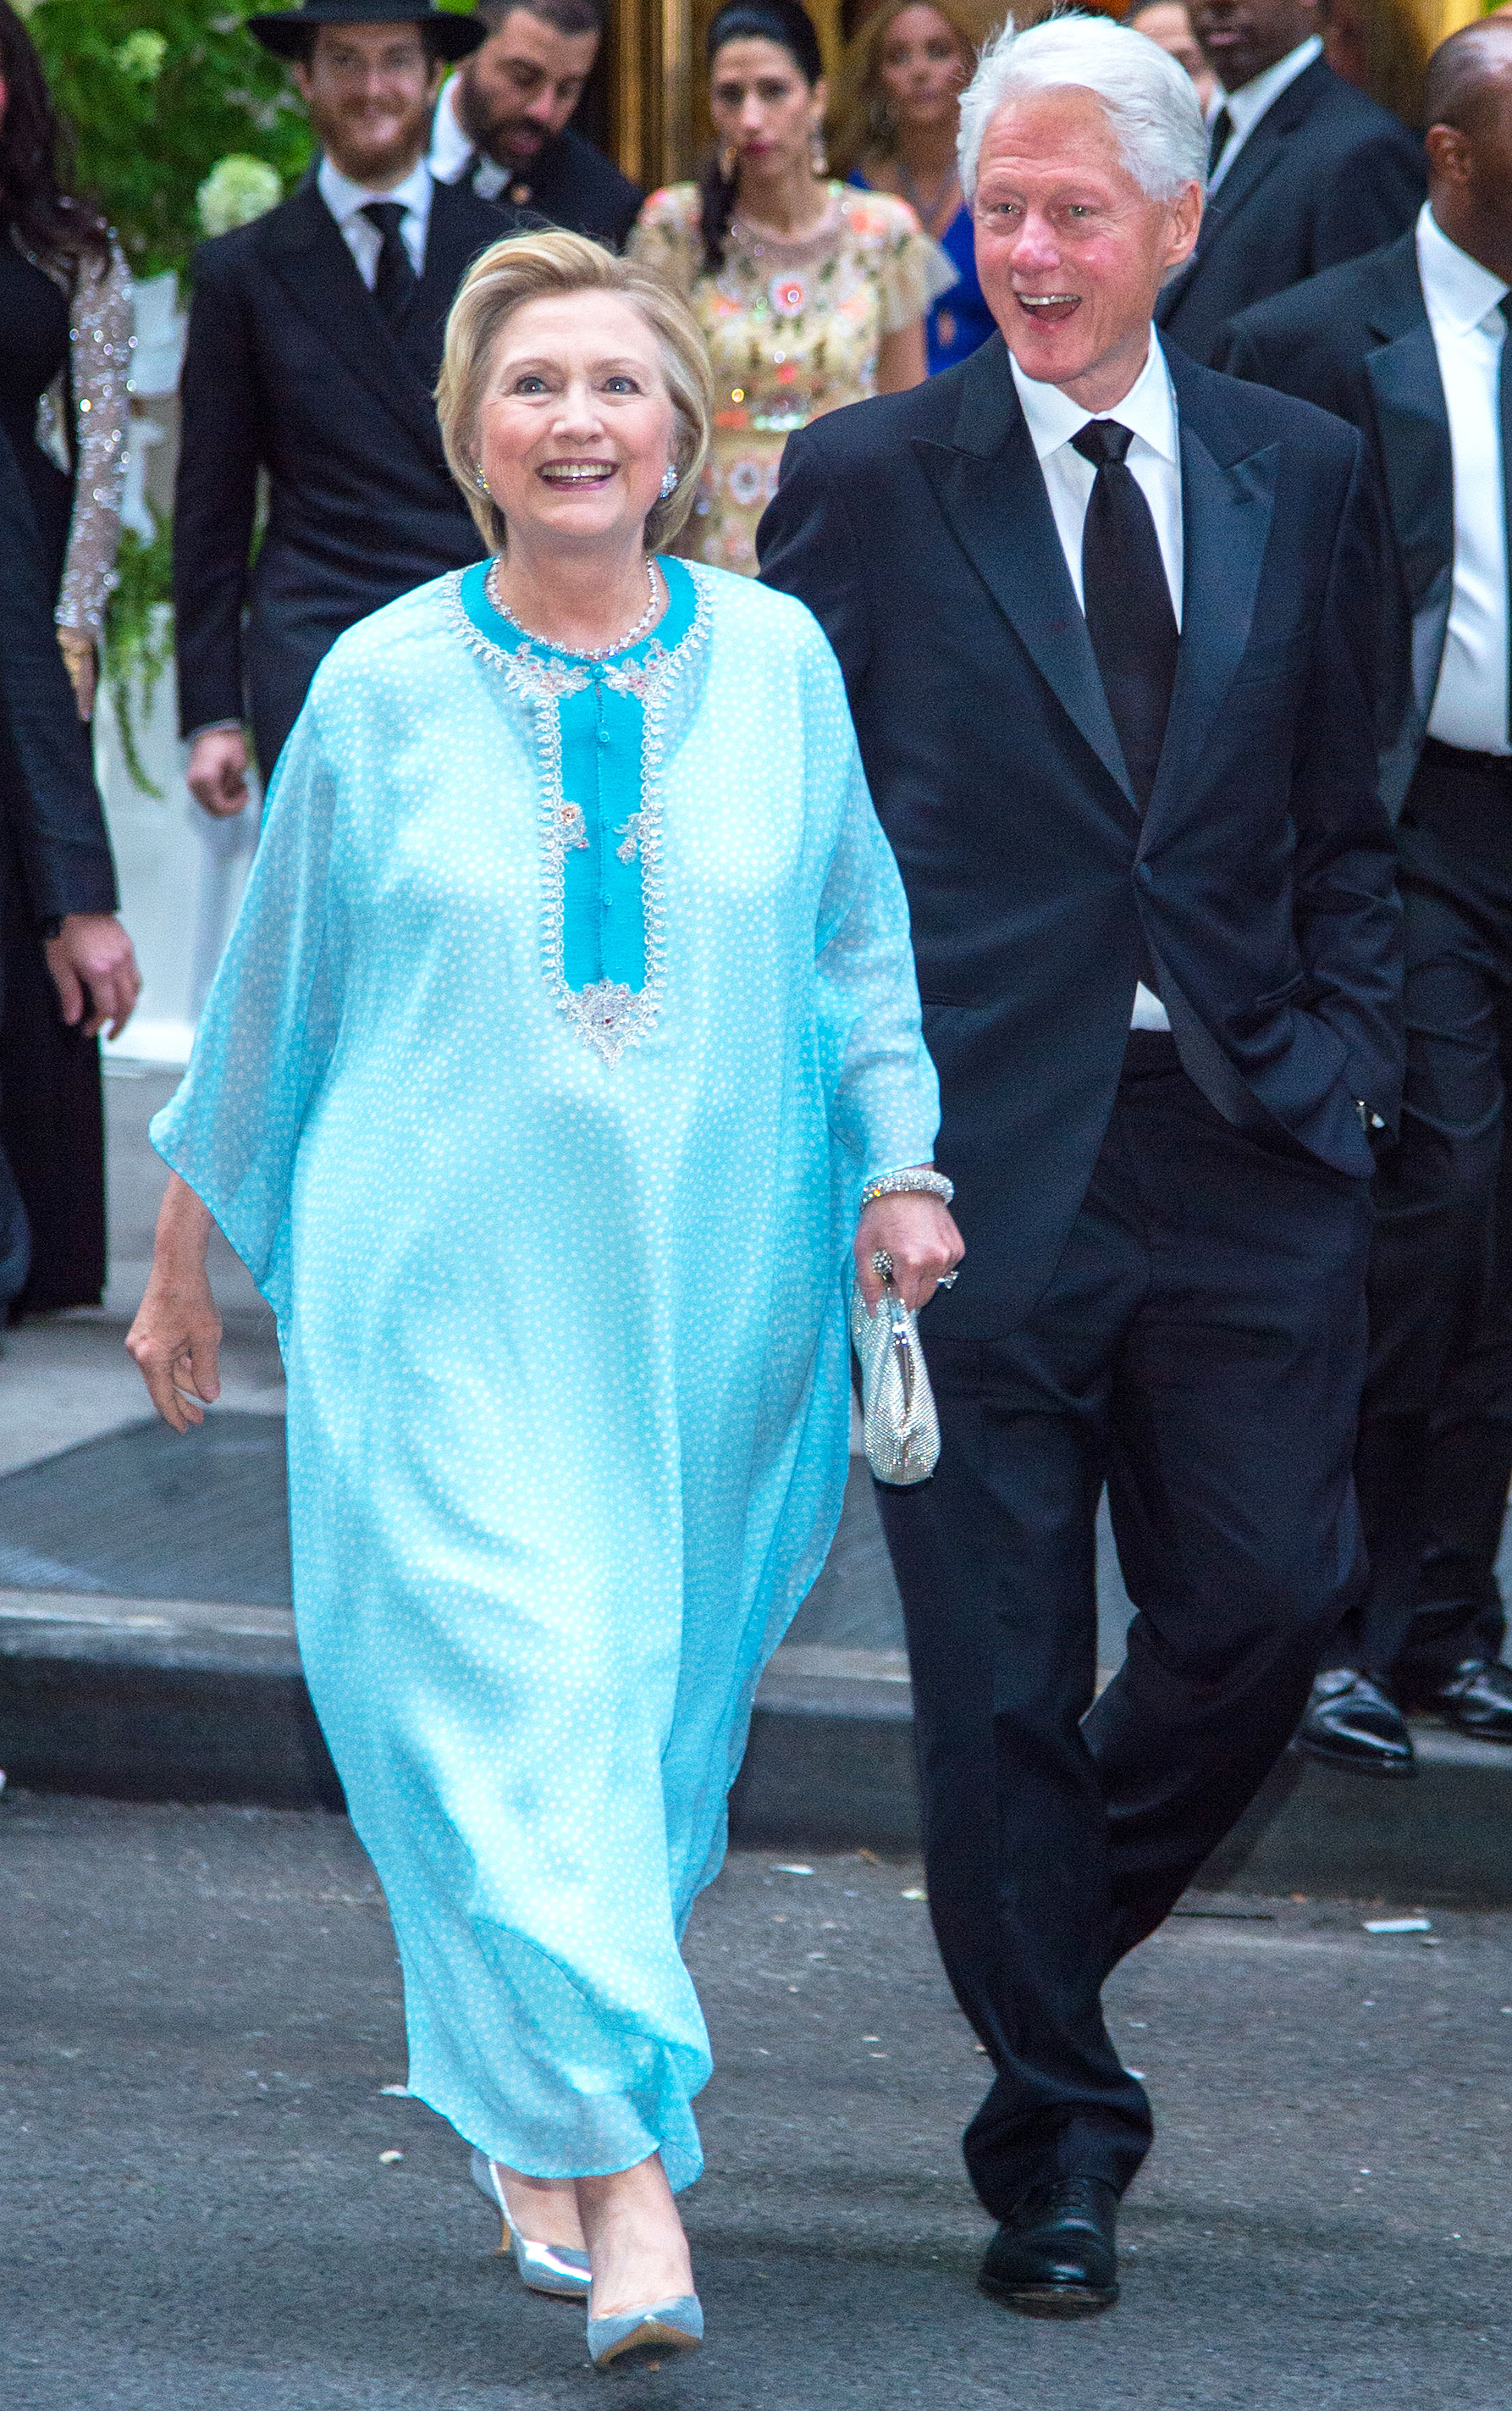 Hillary Clinton Trades Her Pantsuit for a Caftan: Pics